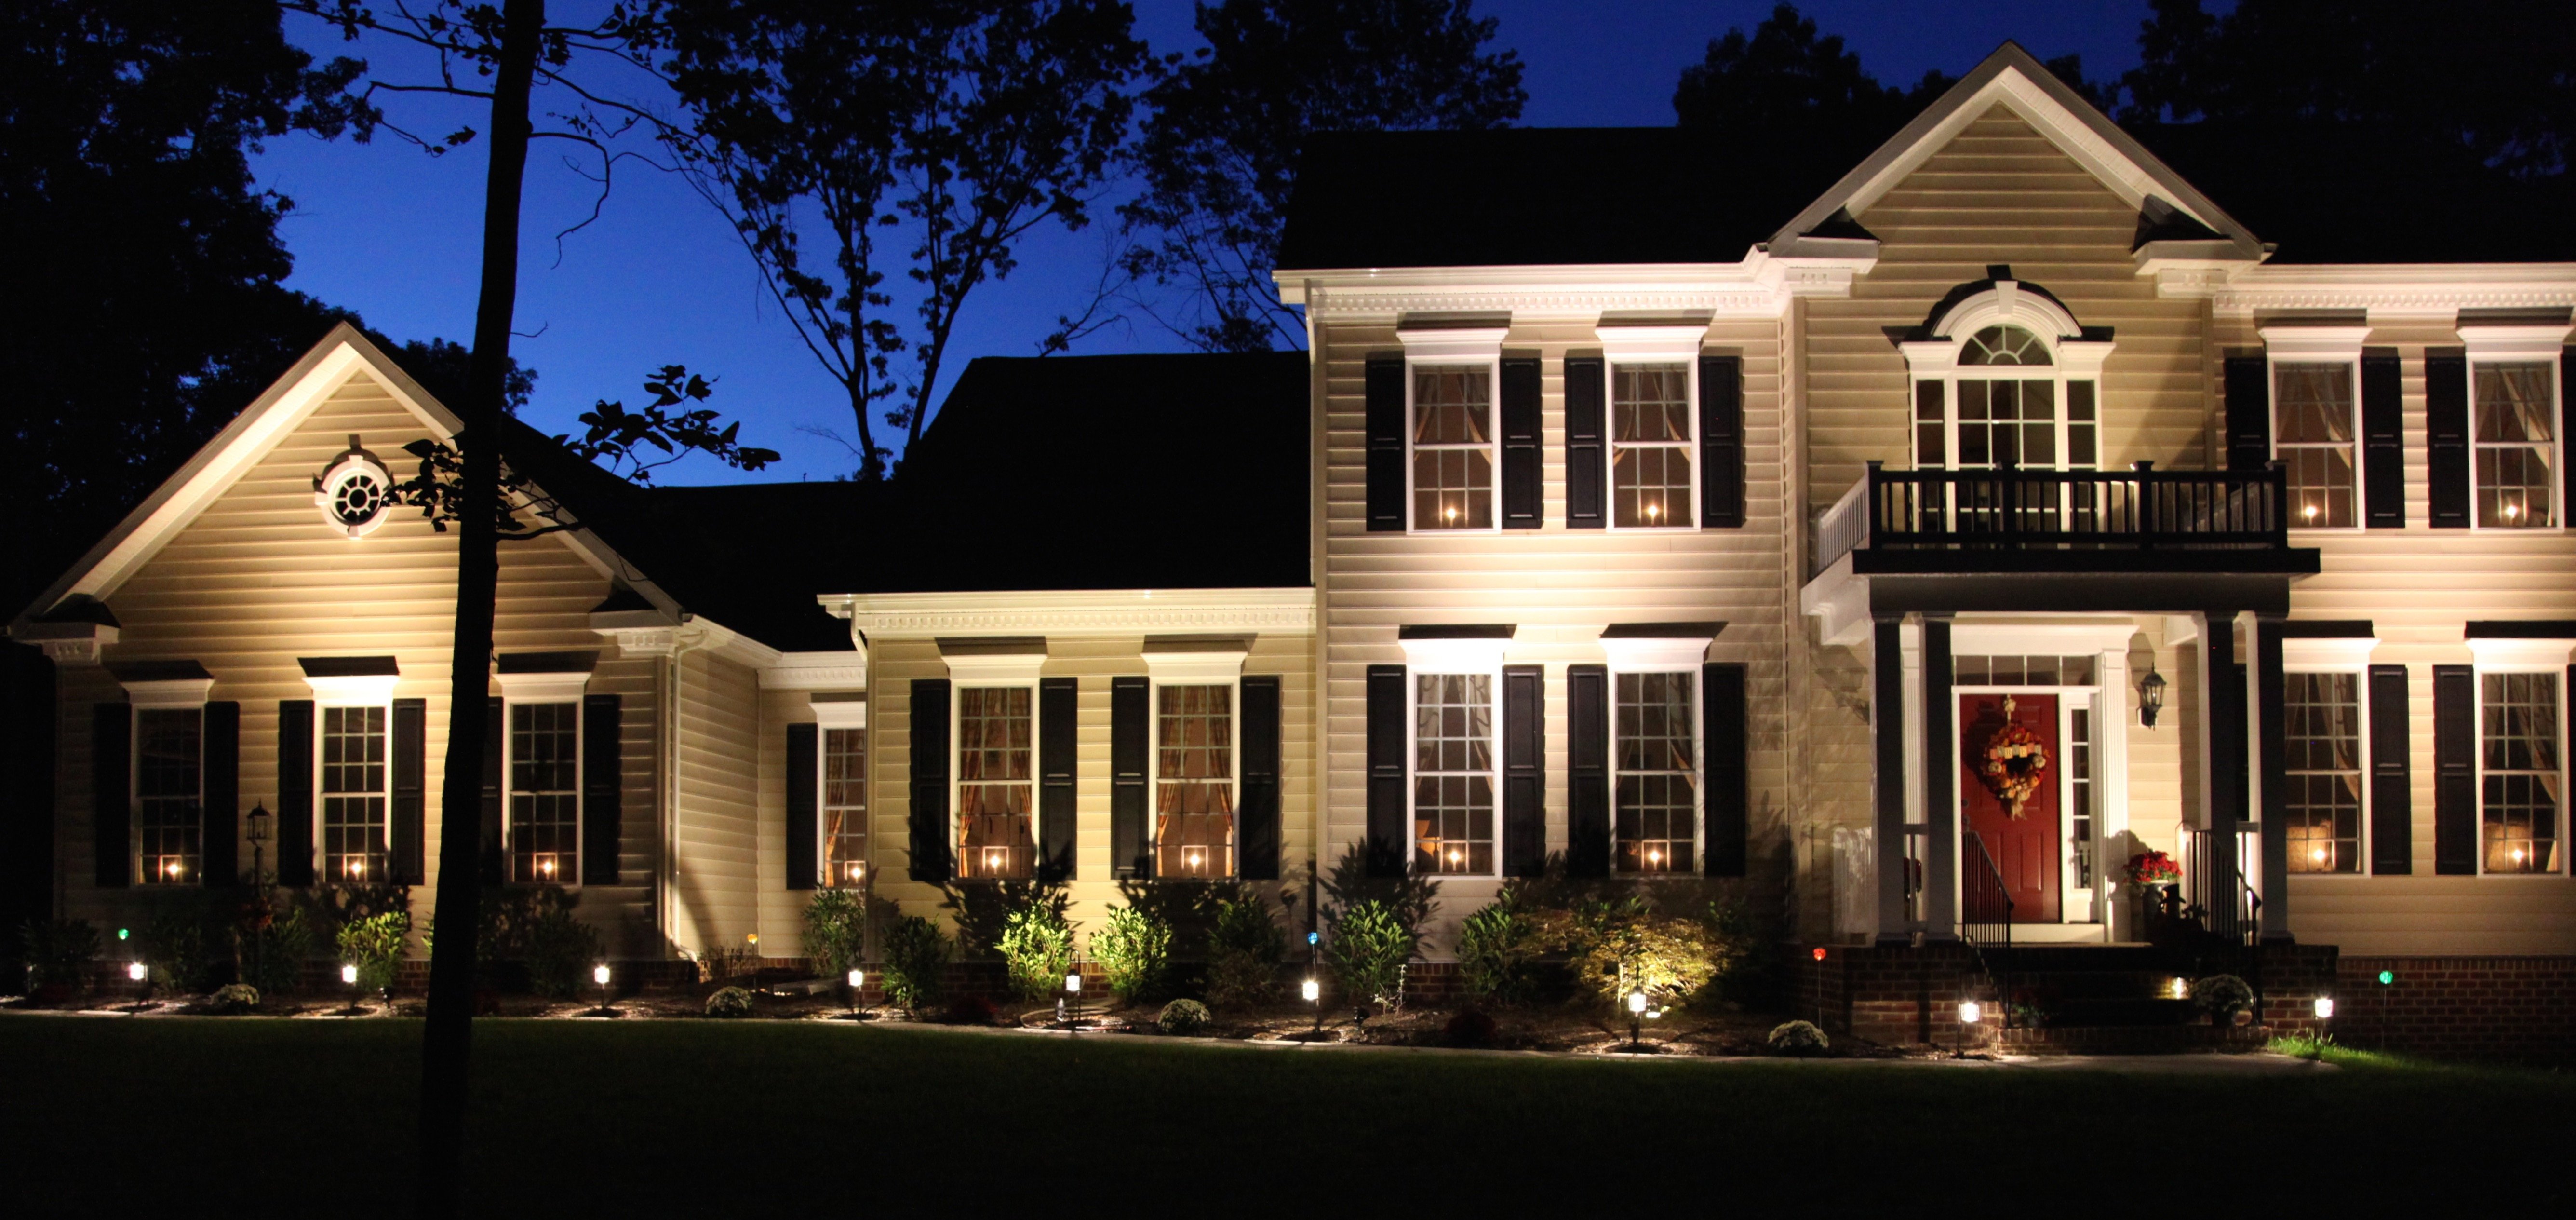 flower bed lighting. The Lighting Is Pretty Throughout Entire Year, But It Especially Right After A Snowfall: Flower Bed N